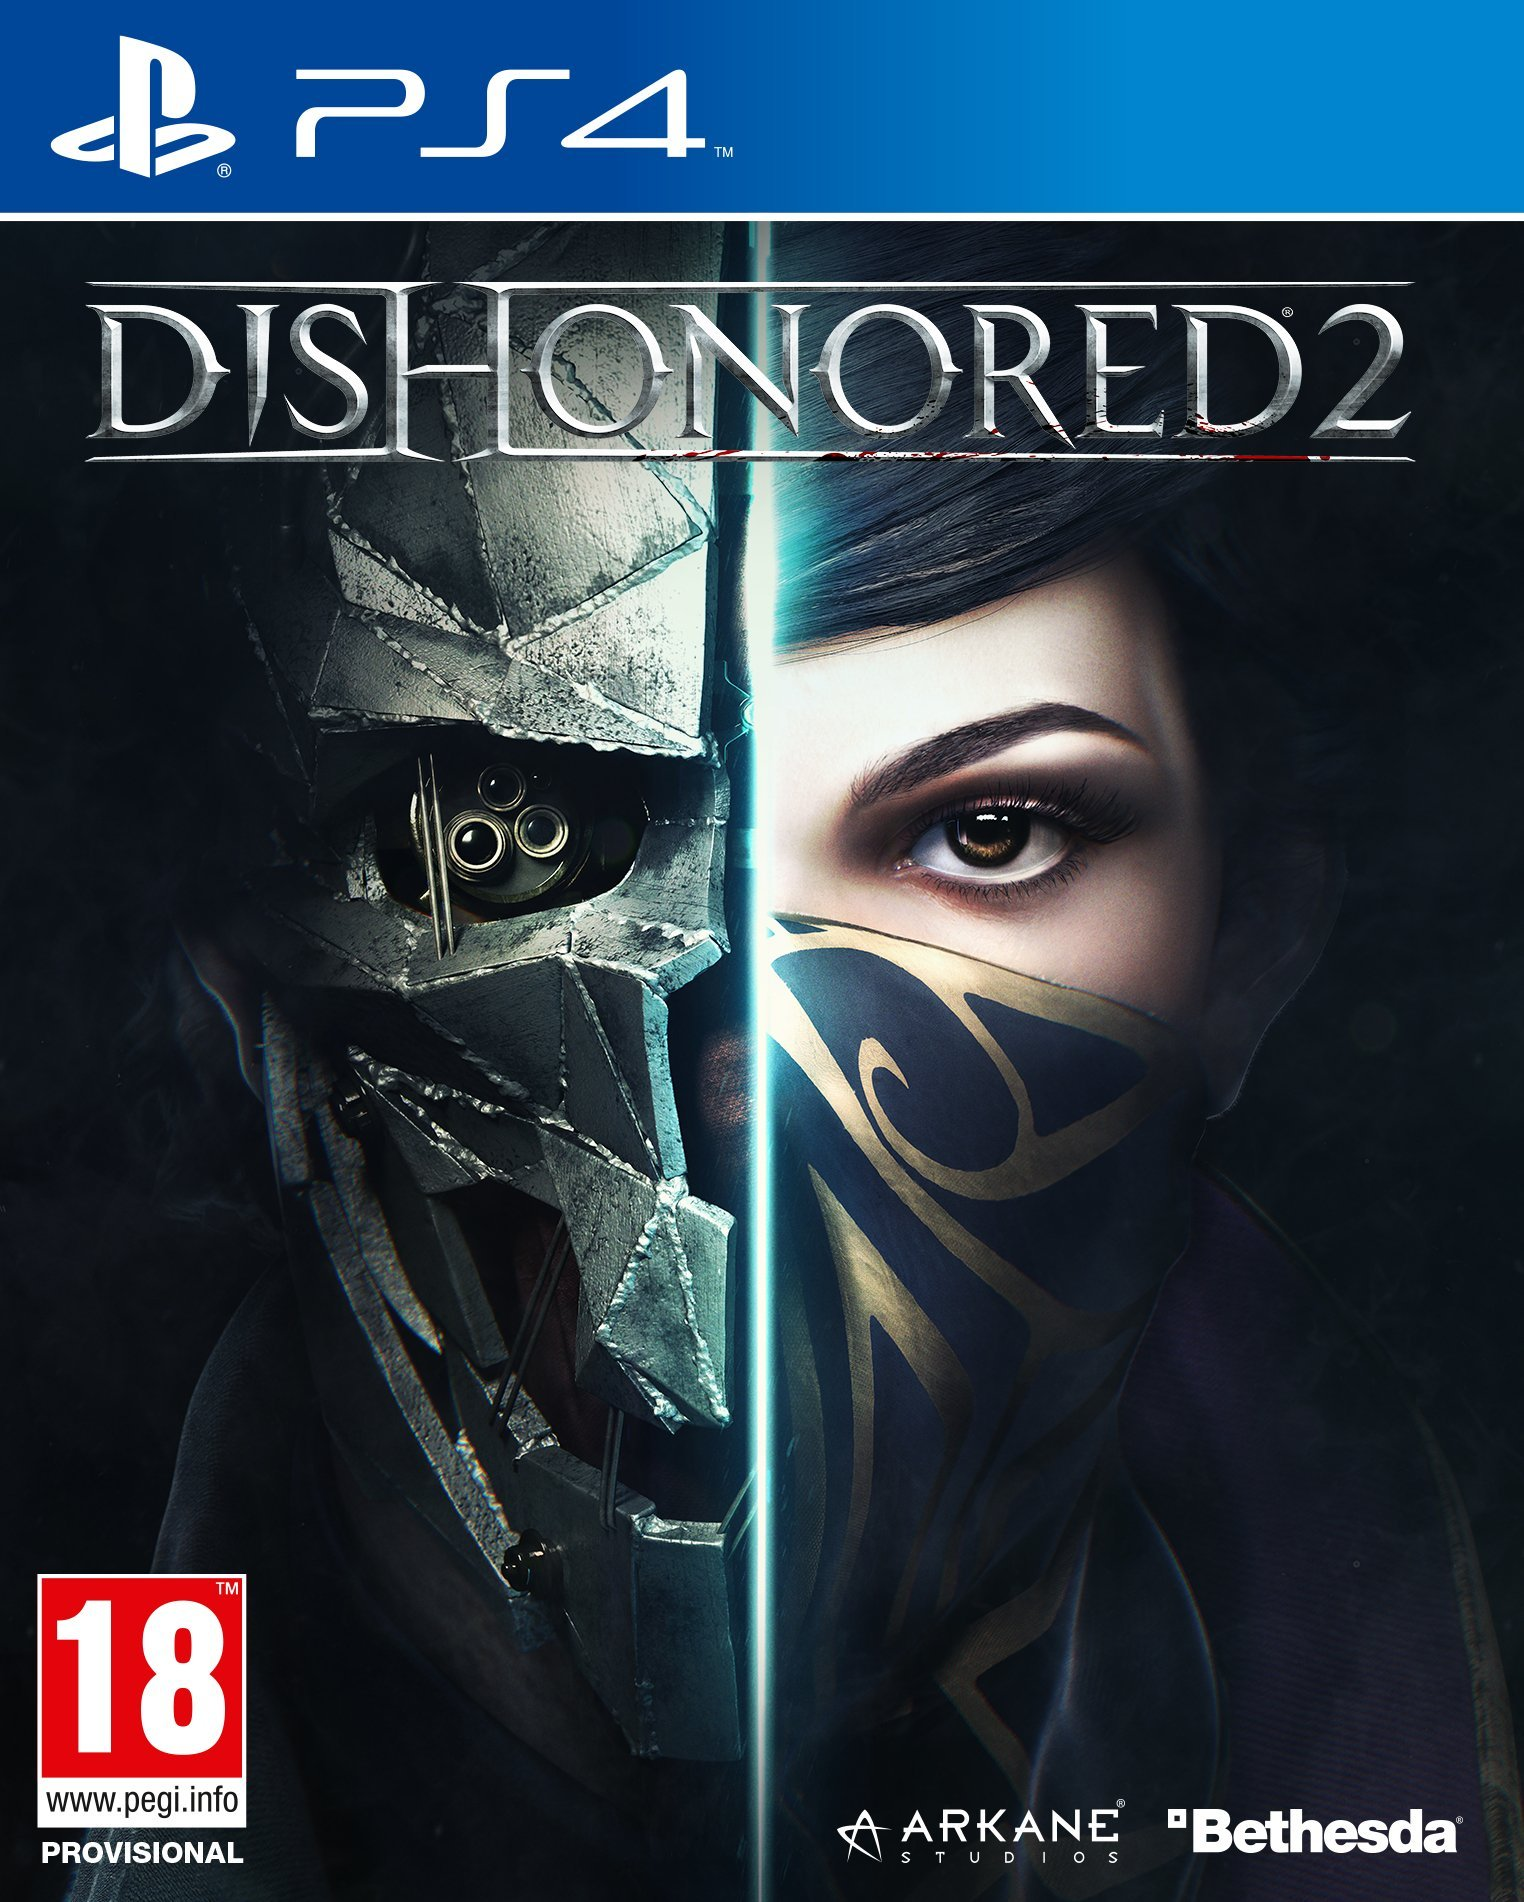 Dishonored 2 [PS4] 5.05 / 6.72 / 7.02 [EUR] (2016) [Русский] (v1.05)